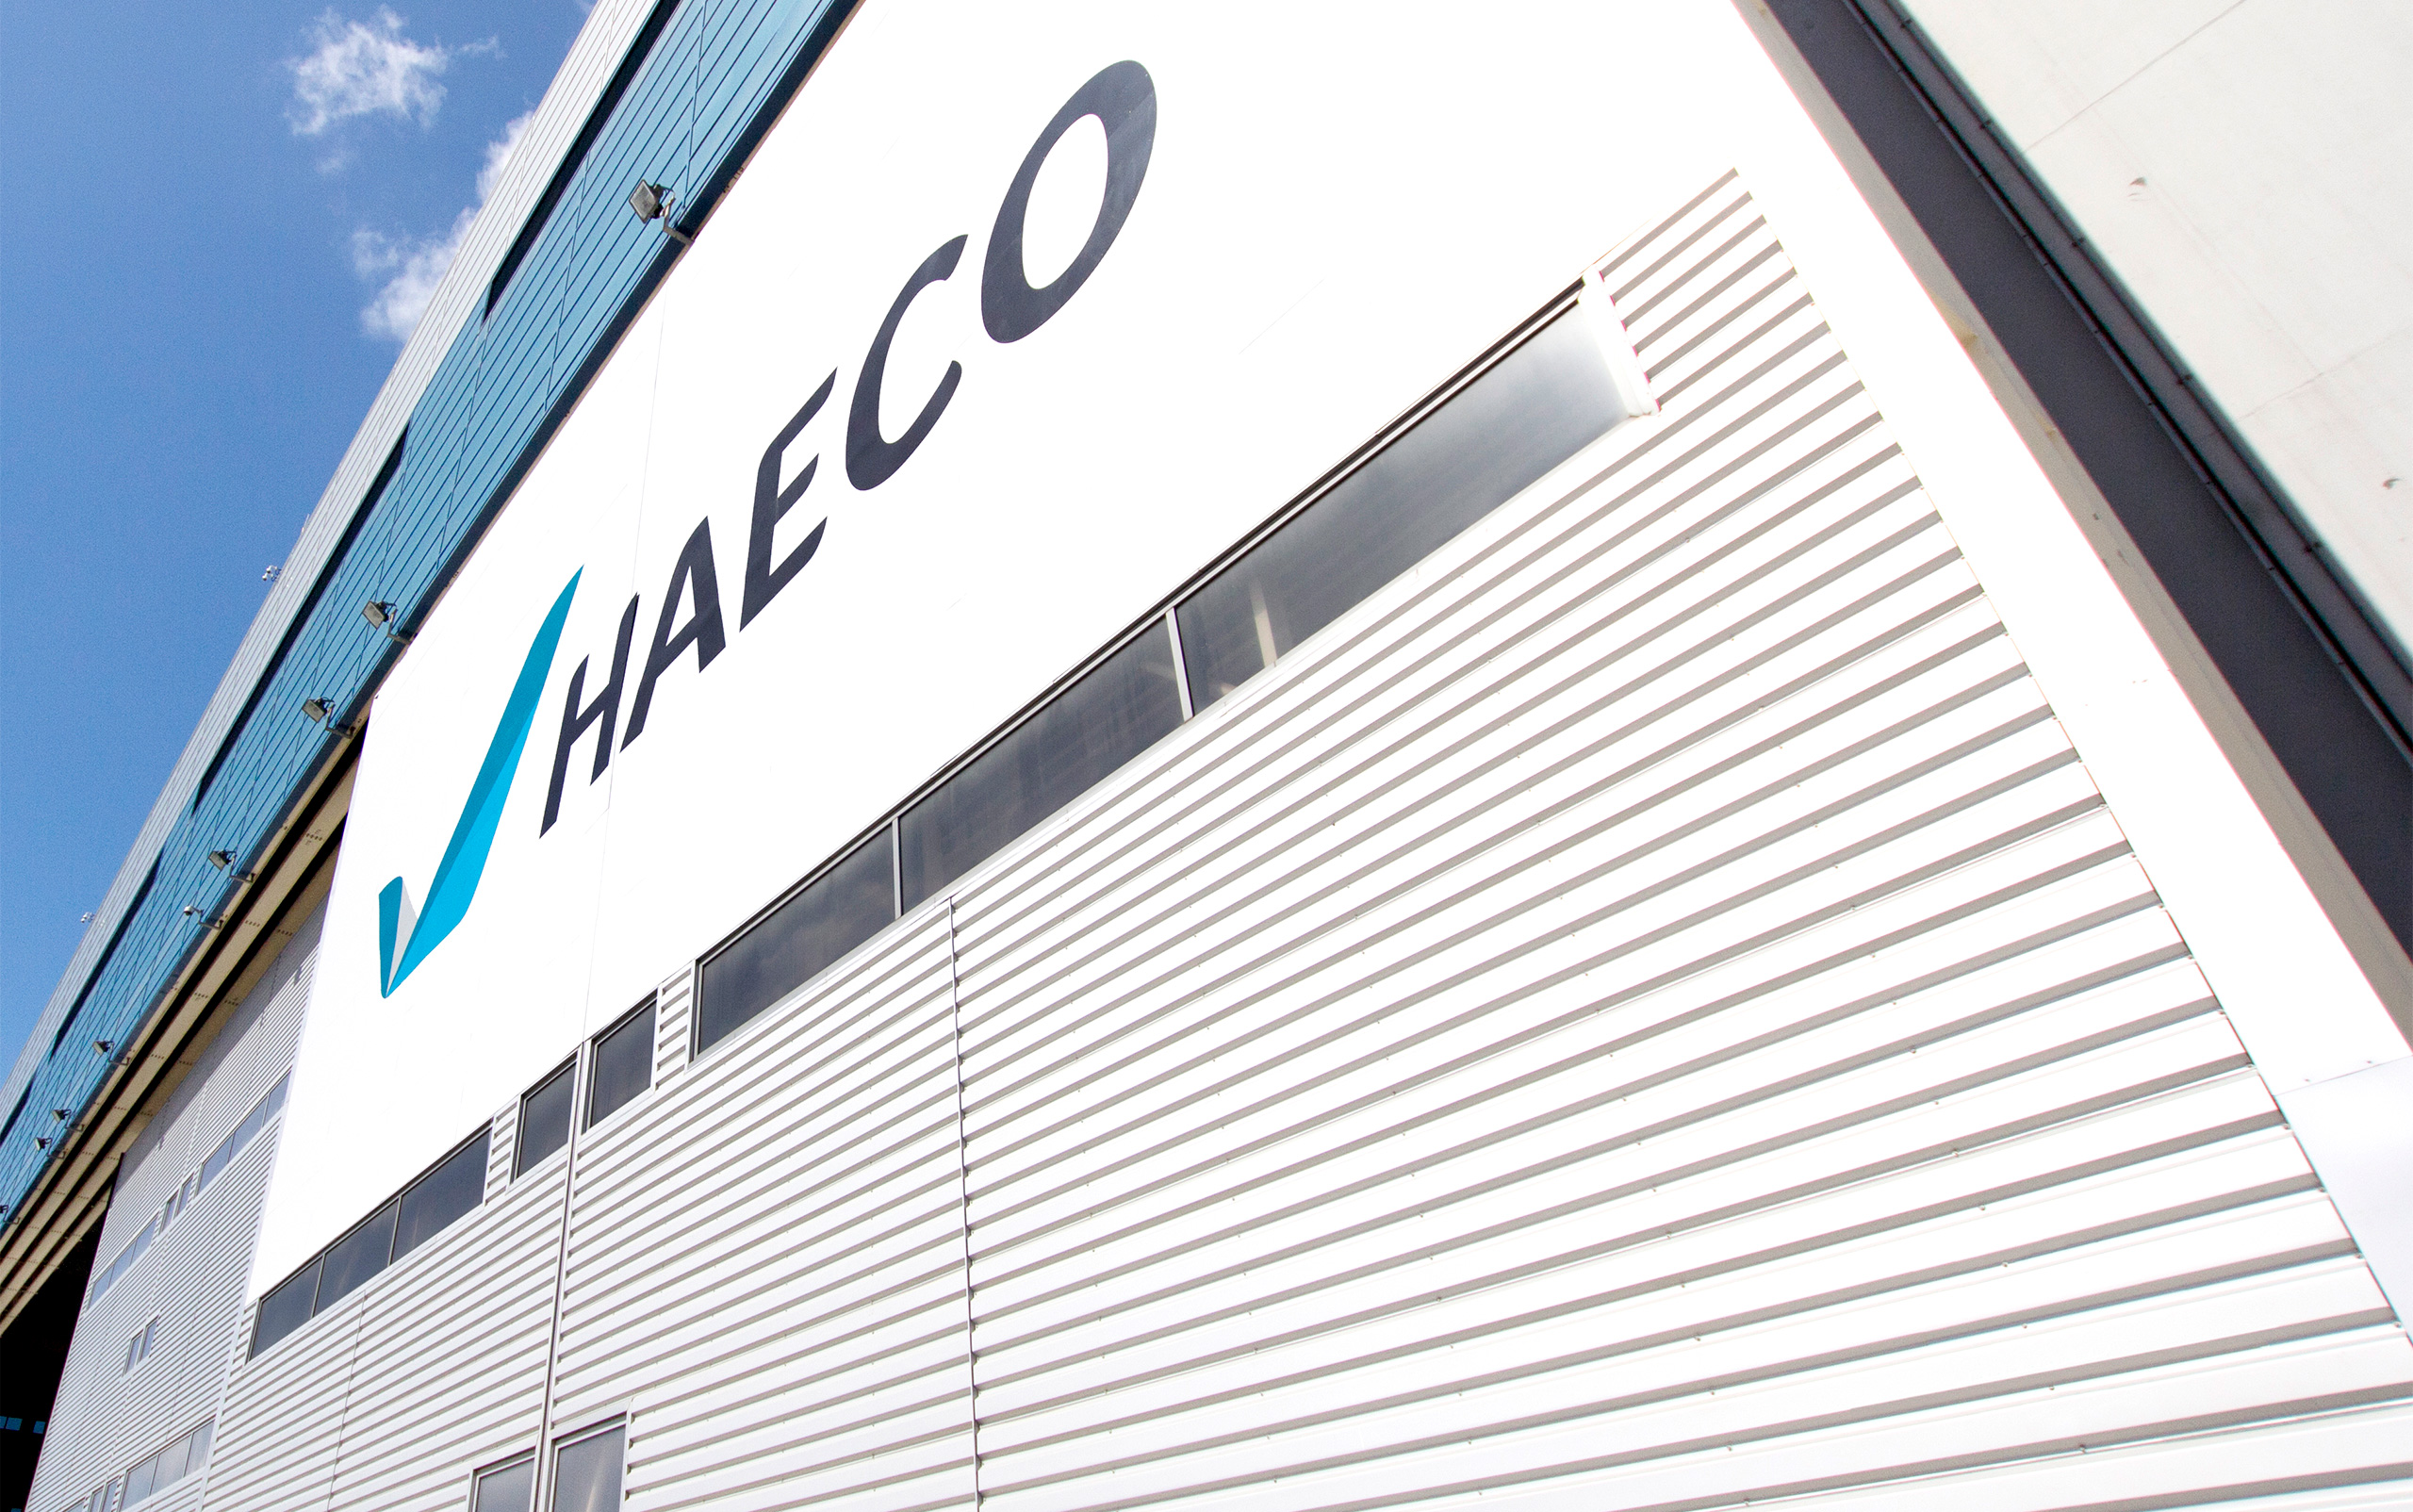 HAECO – Supplier compliance monitoring